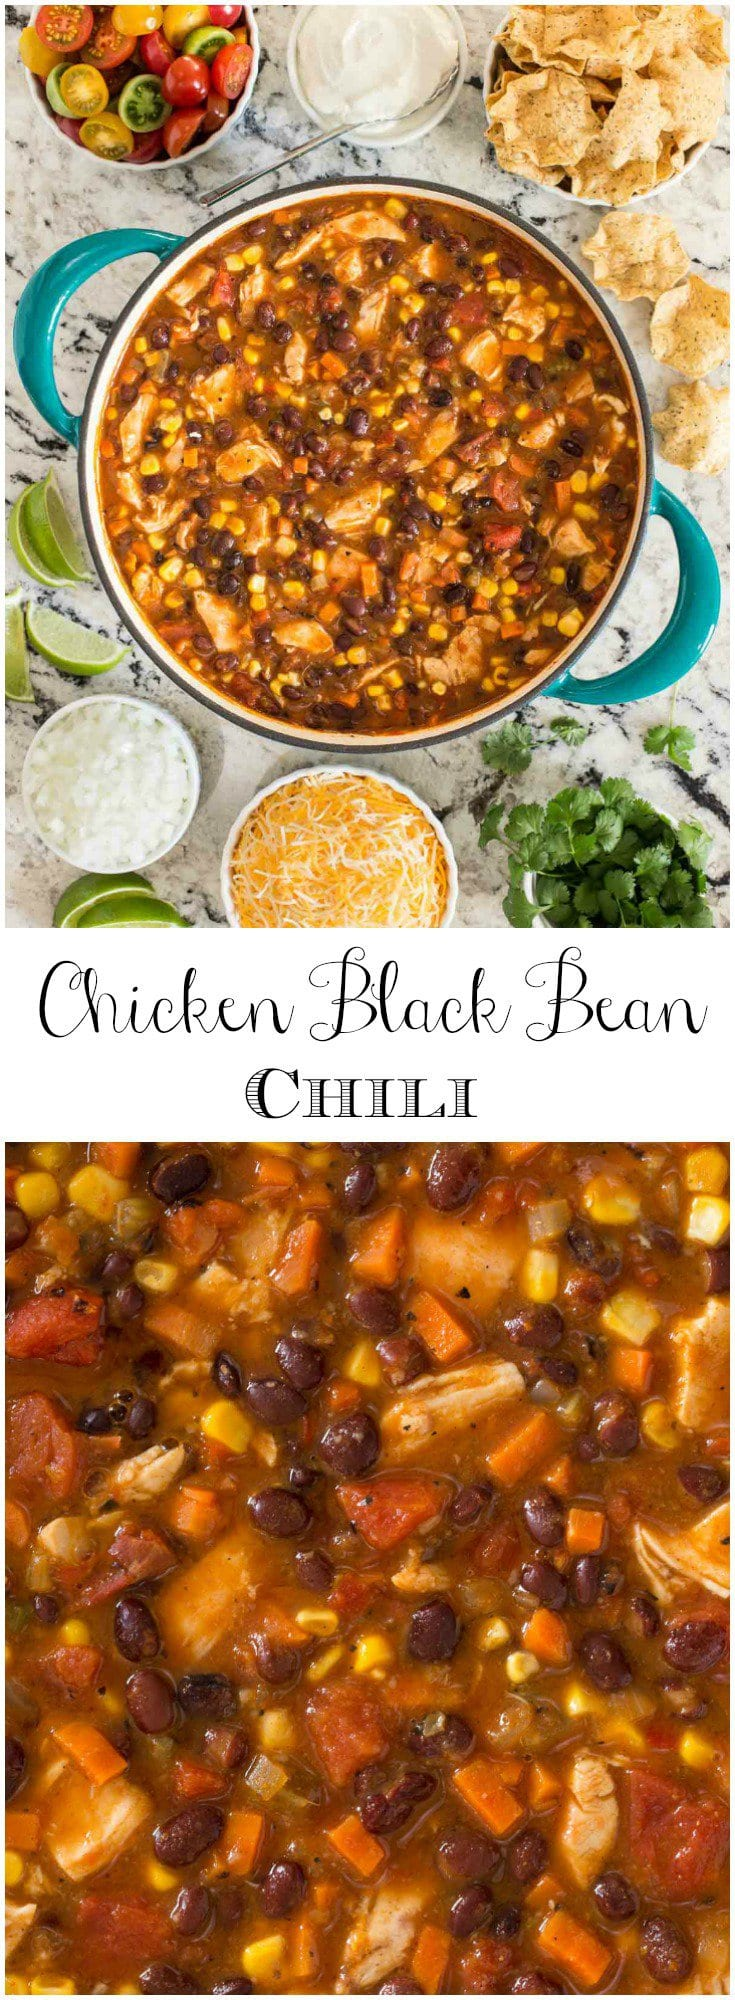 This healthy, delicious Chicken Black Bean Chili, made with rotisserie chicken and lots of fresh veggies, is a perfect way to warm up a chilly day.